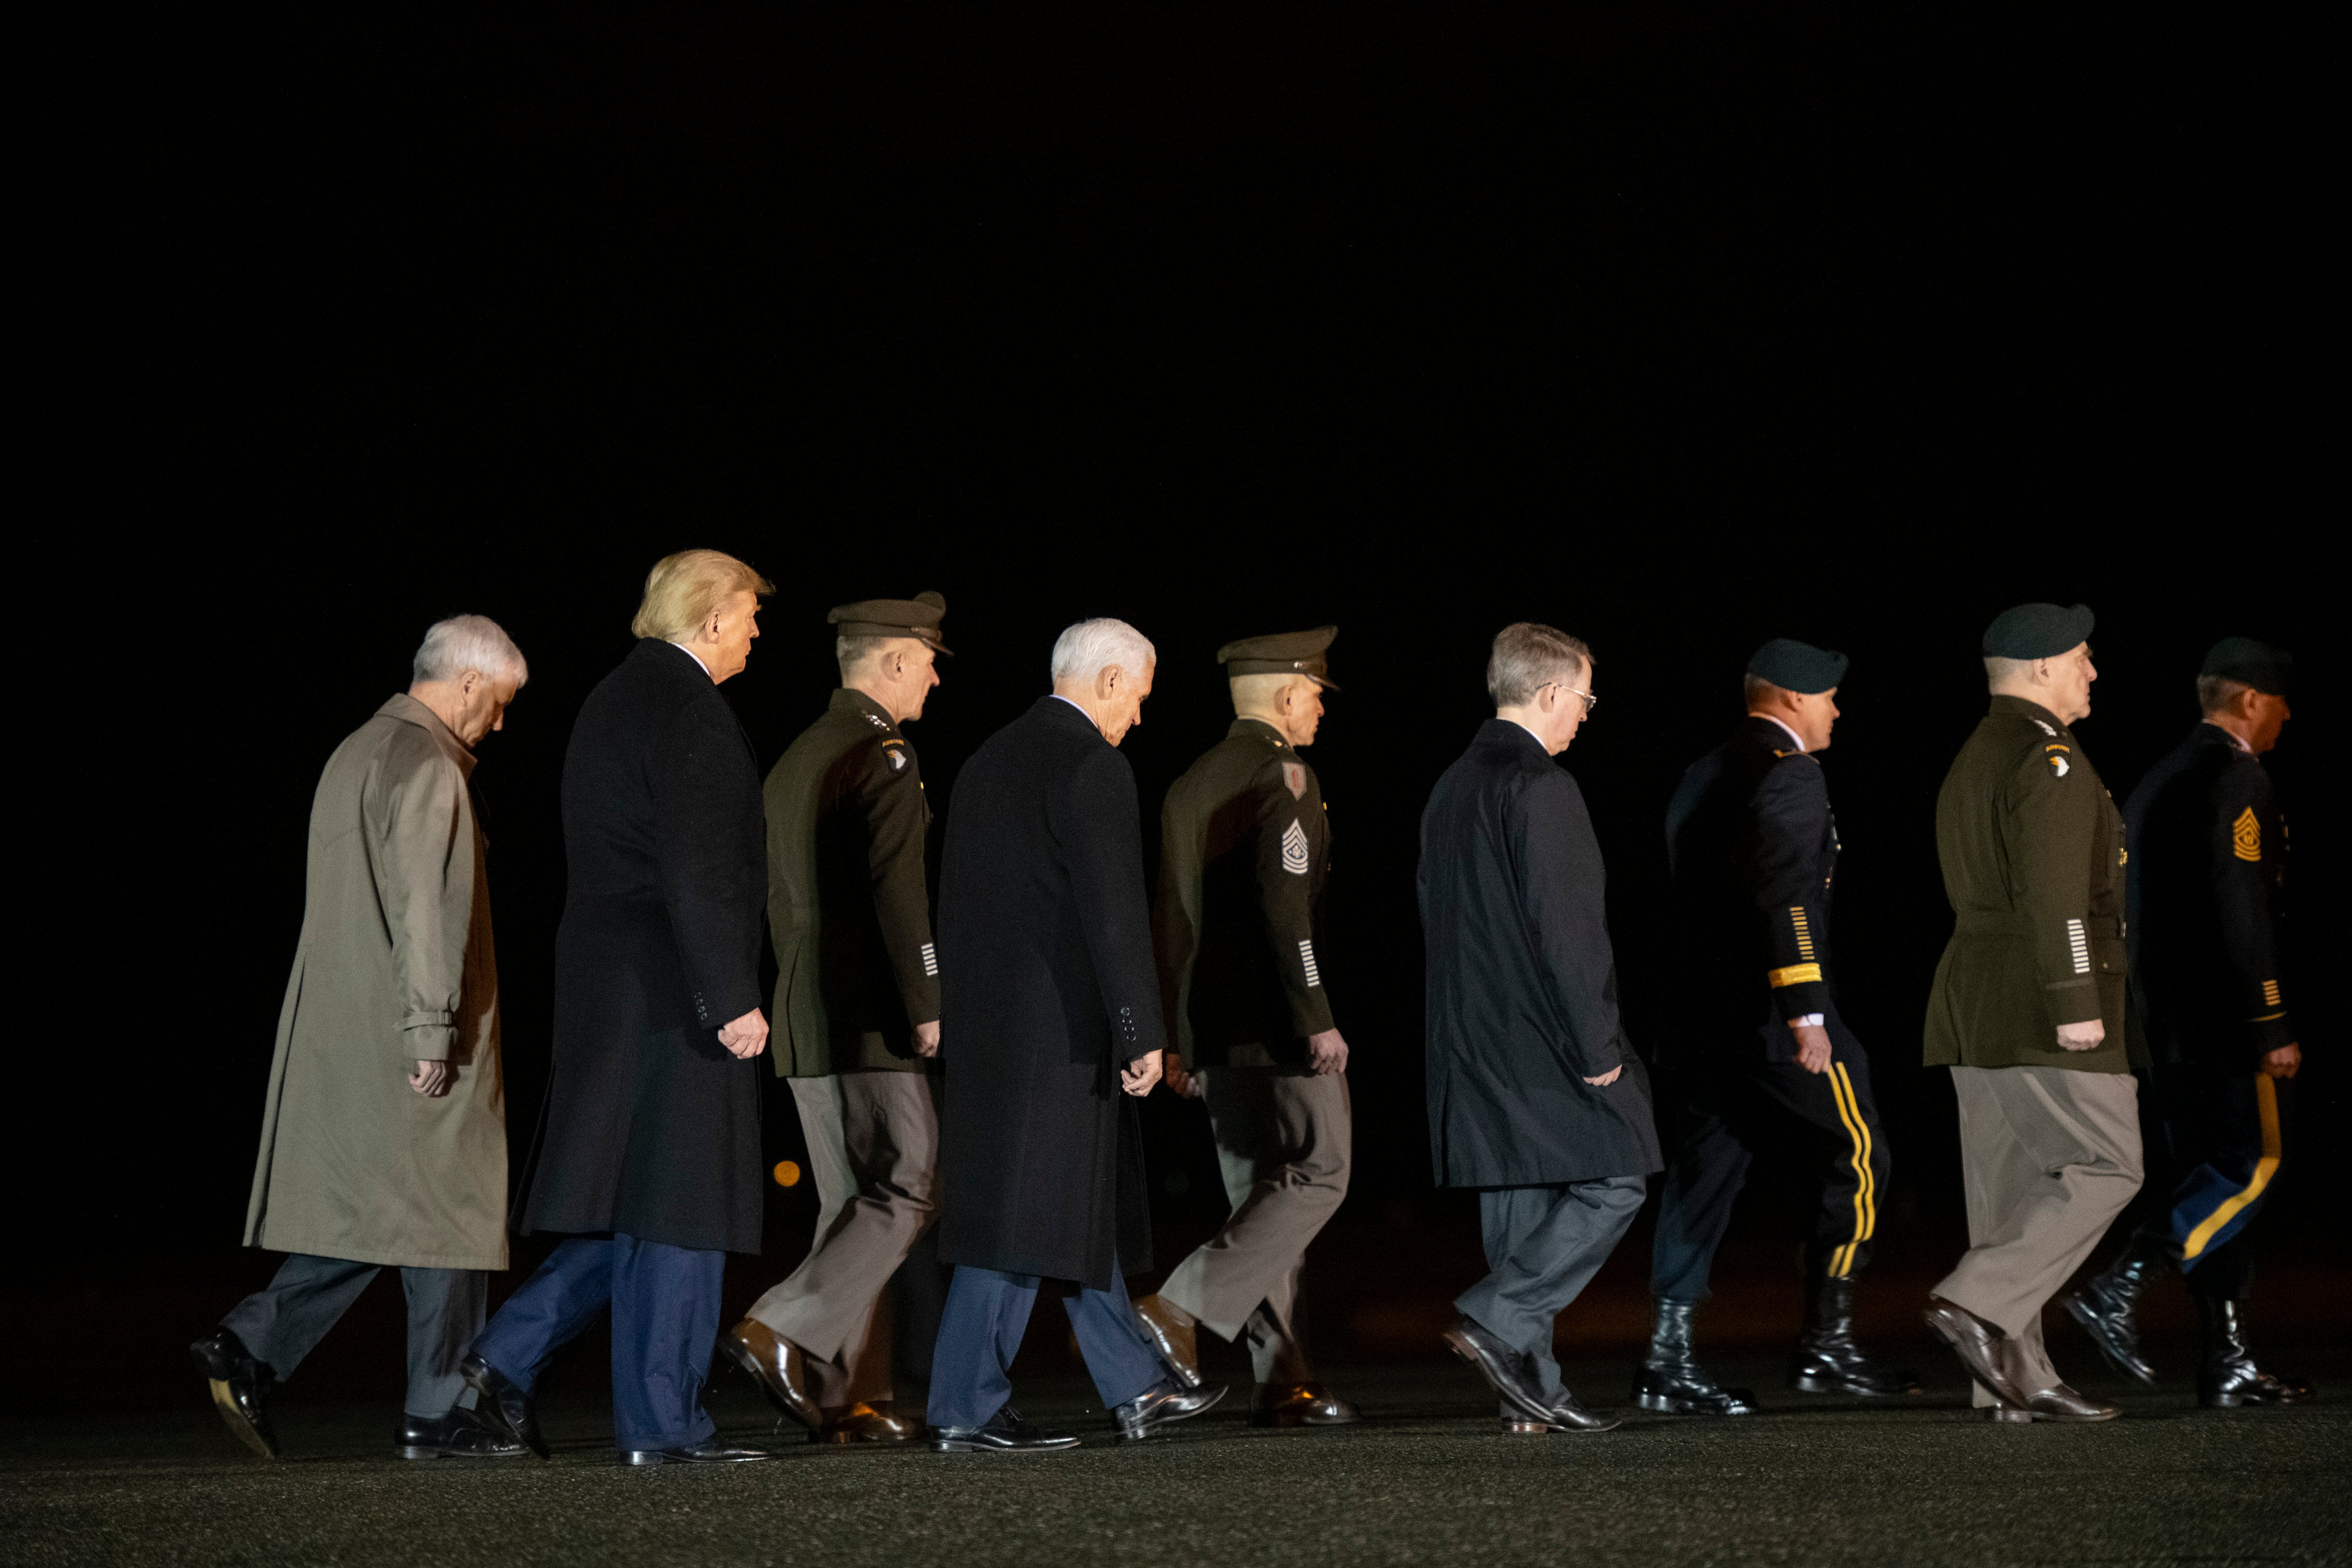 DOVER, DE - FEBRUARY 10: (2nd L) U.S. President Donald J. Trump and (4th L) Vice President Mike Pence depart attending a dignified transfer for fallen service members U.S. Army Sgt. 1st Class Javier J. Gutierrez, 28, and Army Sgt. 1st Class Antonio R. Rodriguez, 28, at Dover Air Force Base on February 10, 2020 in Dover, Delaware. Both soldiers were both killed in an attack in the Nangarhar province of Afghanistan on Saturday, according to a Department of Defense release. (Photo by Mark Makela/Getty Images)